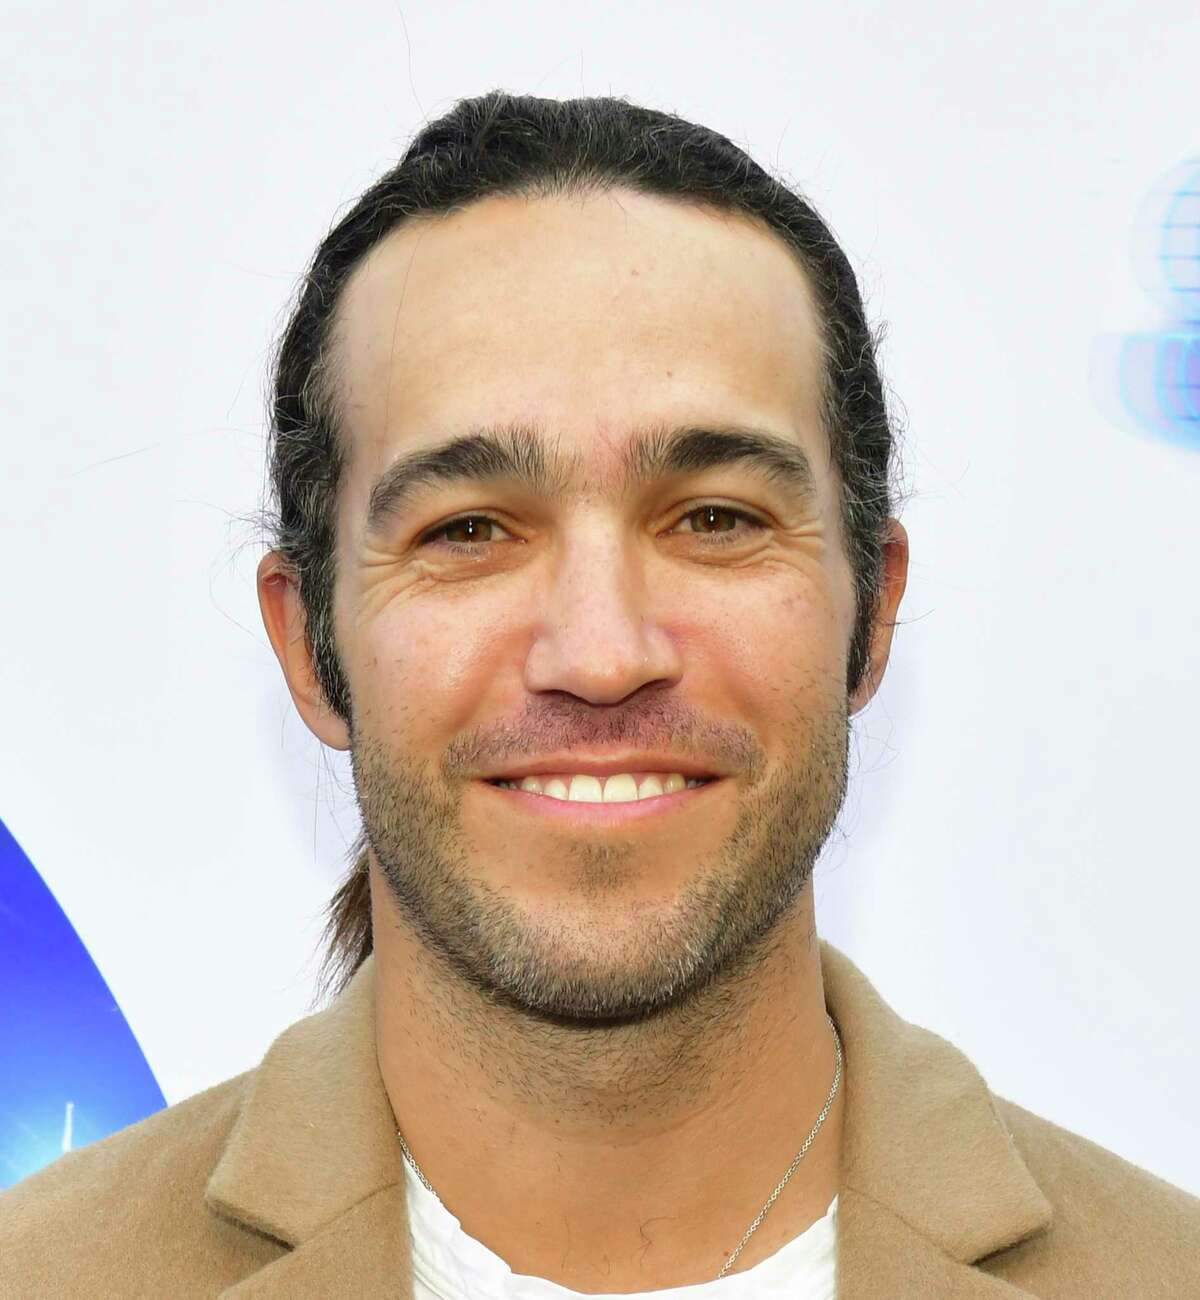 HOLLYWOOD, CALIFORNIA - JANUARY 25: Pete Wentz attends the Sonic The Hedgehog Family Day Event on January 25, 2020 in Hollywood, California. (Photo by Rodin Eckenroth/Getty Images)